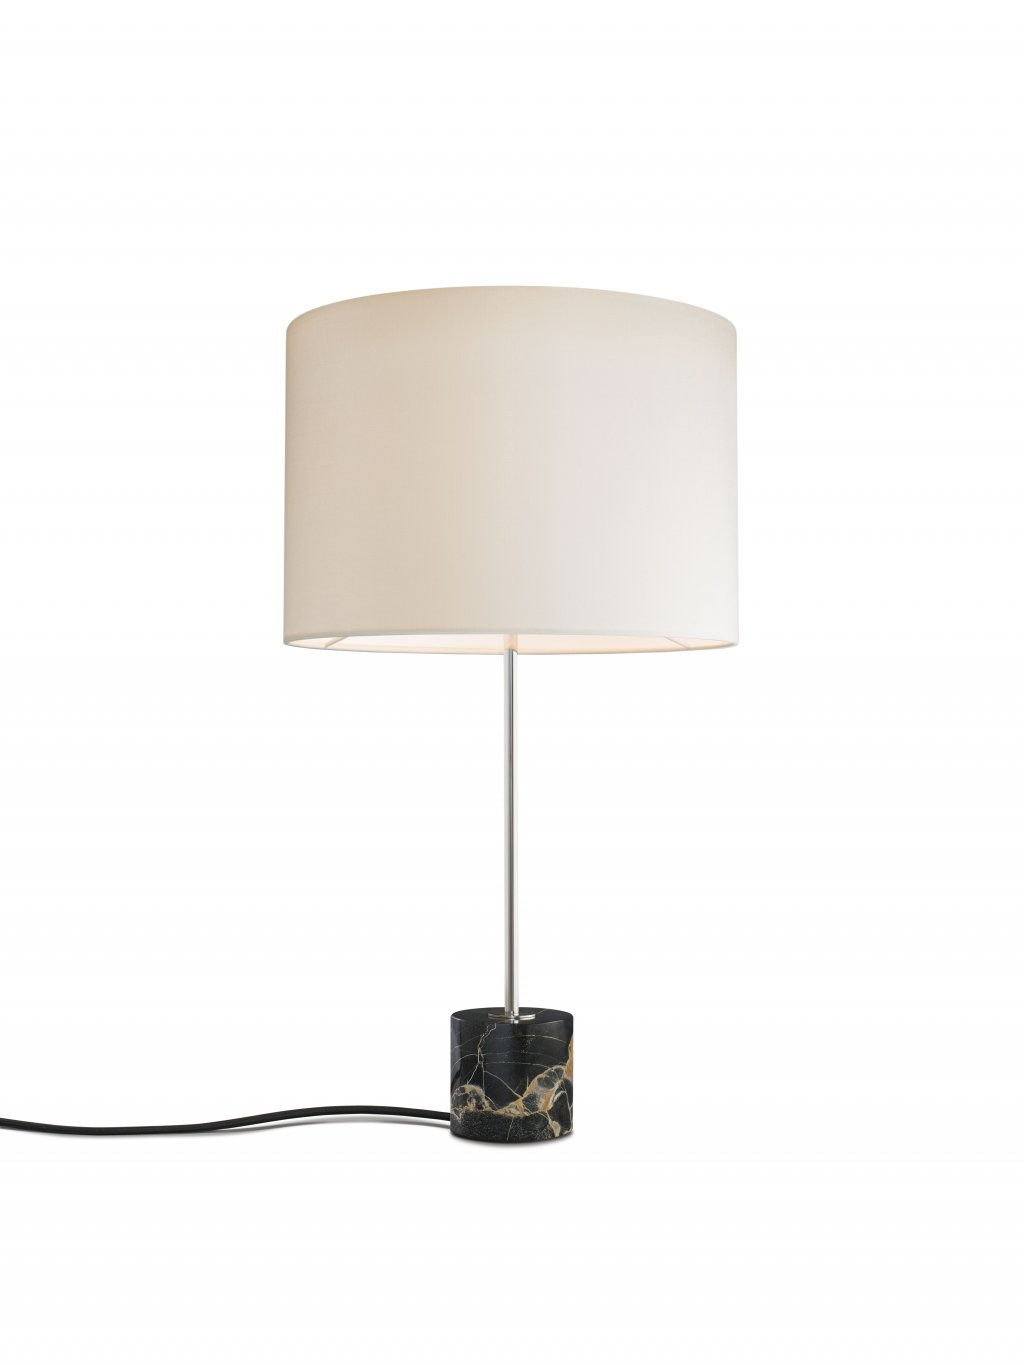 Kilo Table Lamp, Potoro, 1959